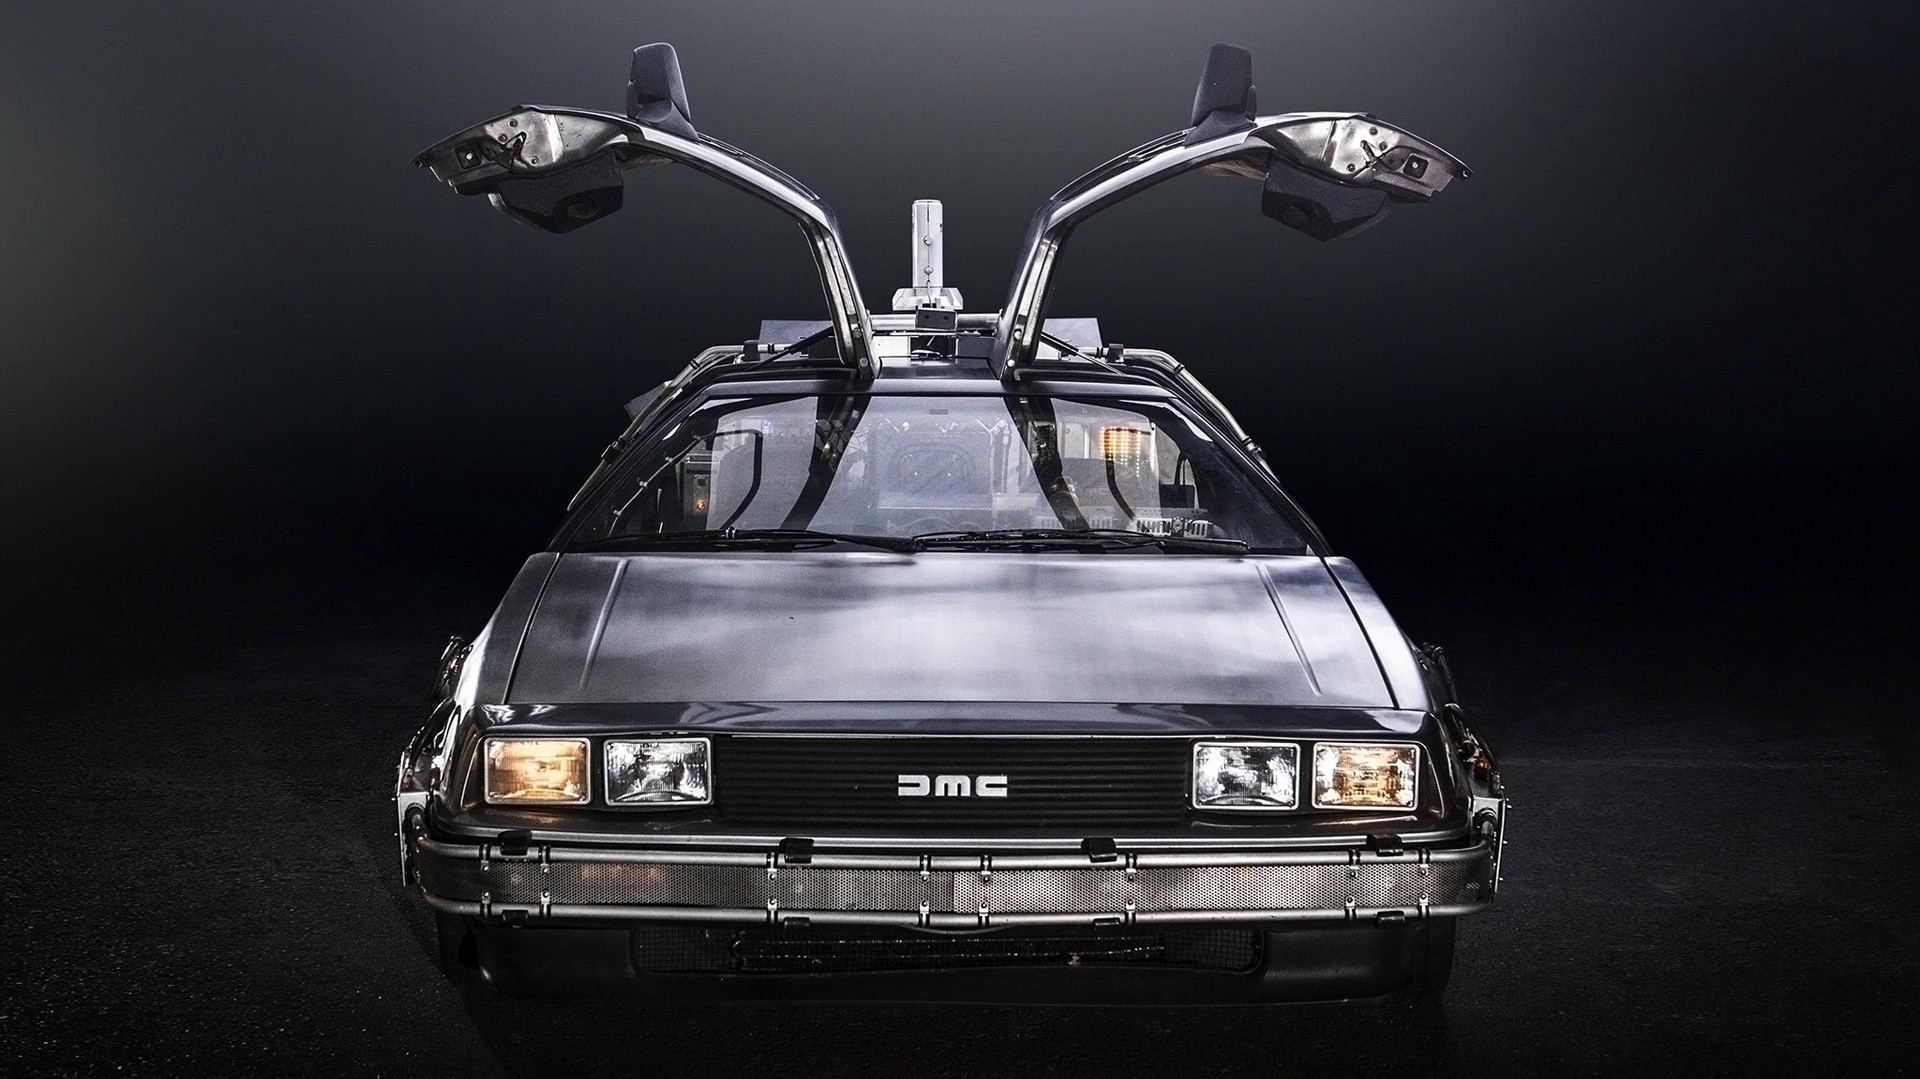 delorean car wallpaper 62496